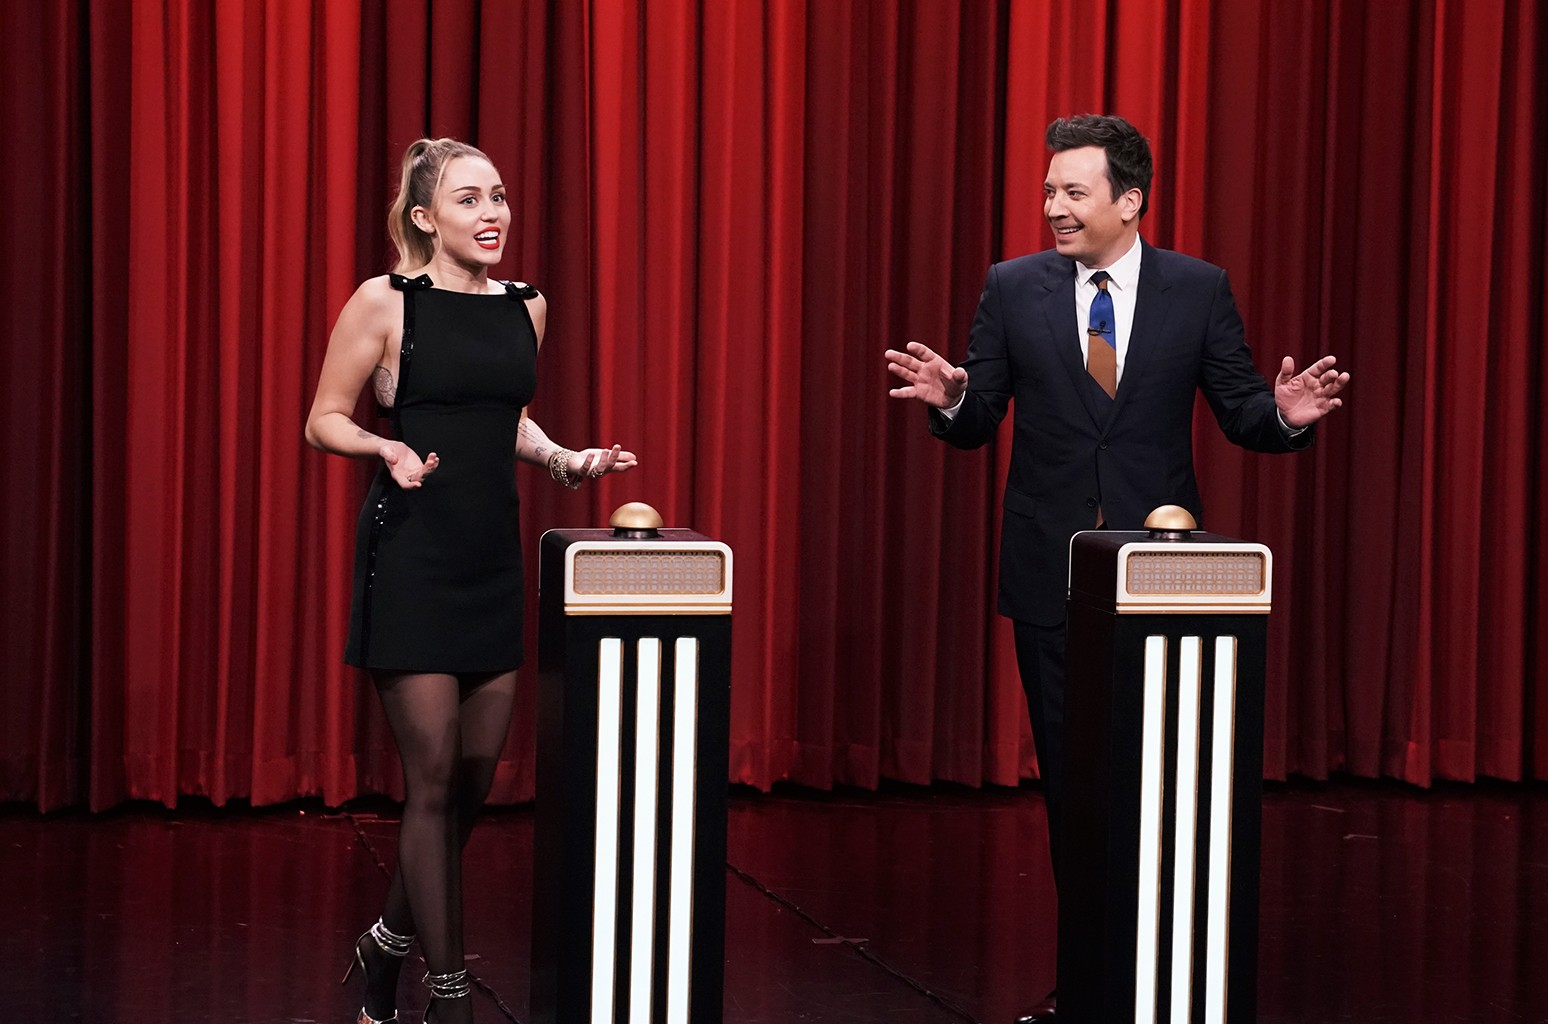 """Miley Cyrus and host Jimmy Fallon during """"Name That Song Challenge"""" on The Tonight Show Starring Jimmy Fallon on Dec. 13, 2018."""